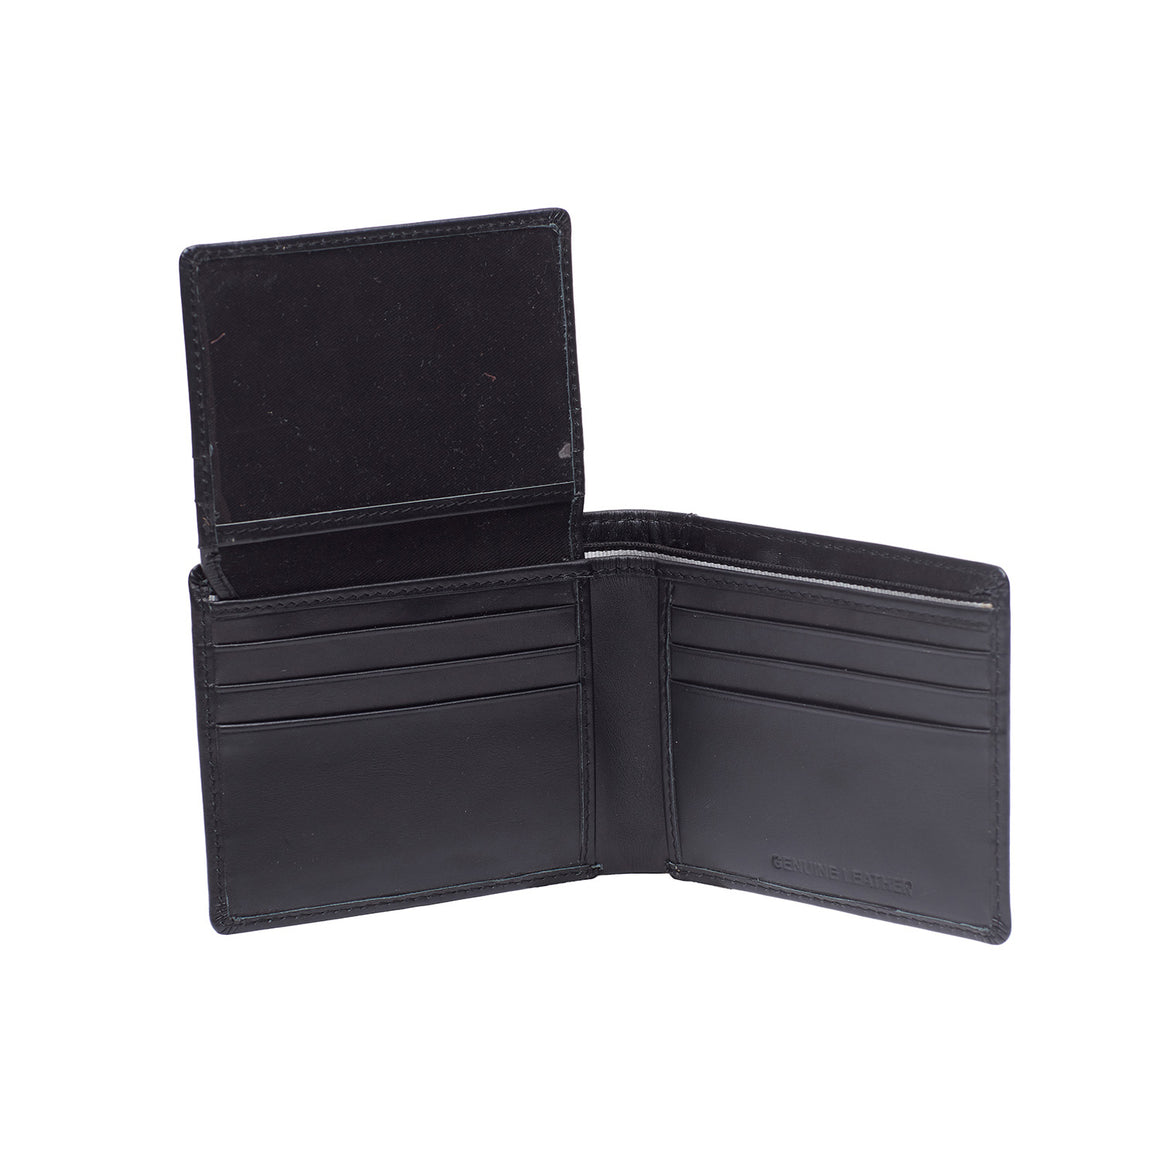 WT 0028 - TOHL ZONA MEN'S WALLET - CHARCOAL BLACK